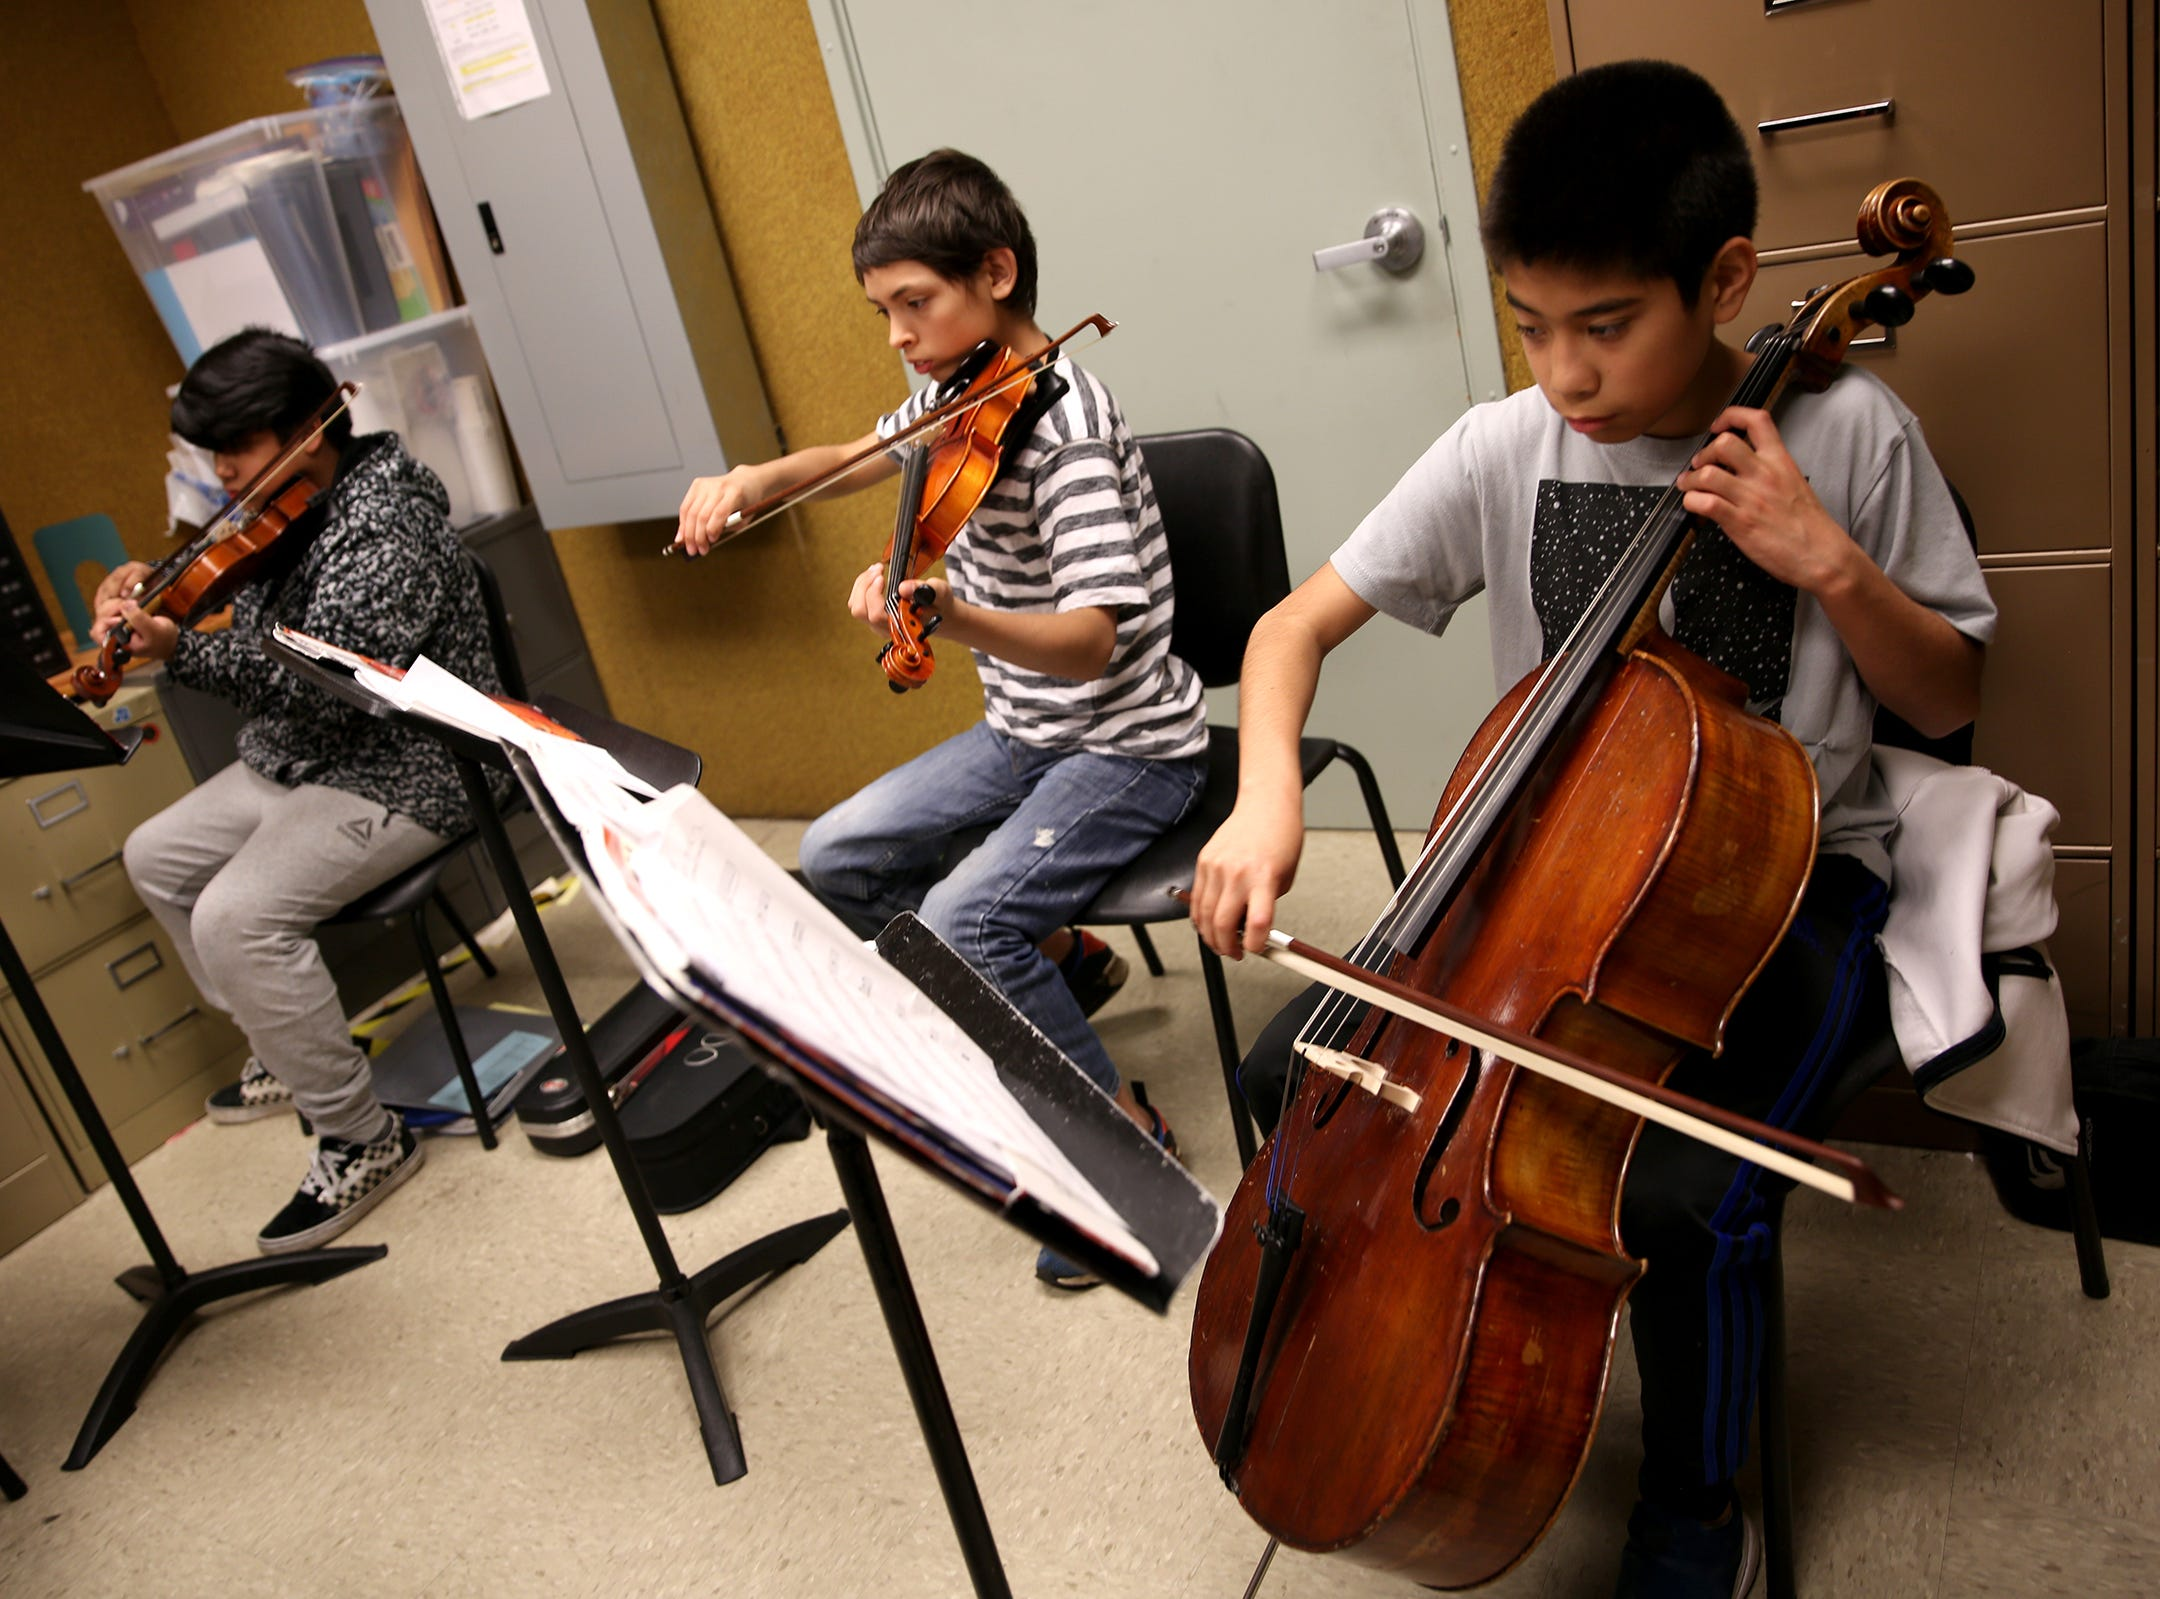 Waldo Middle School students participate in the Music Lessons Project, which offers private or small group lessons to students in Title I schools, in Salem on April 19, 2019.